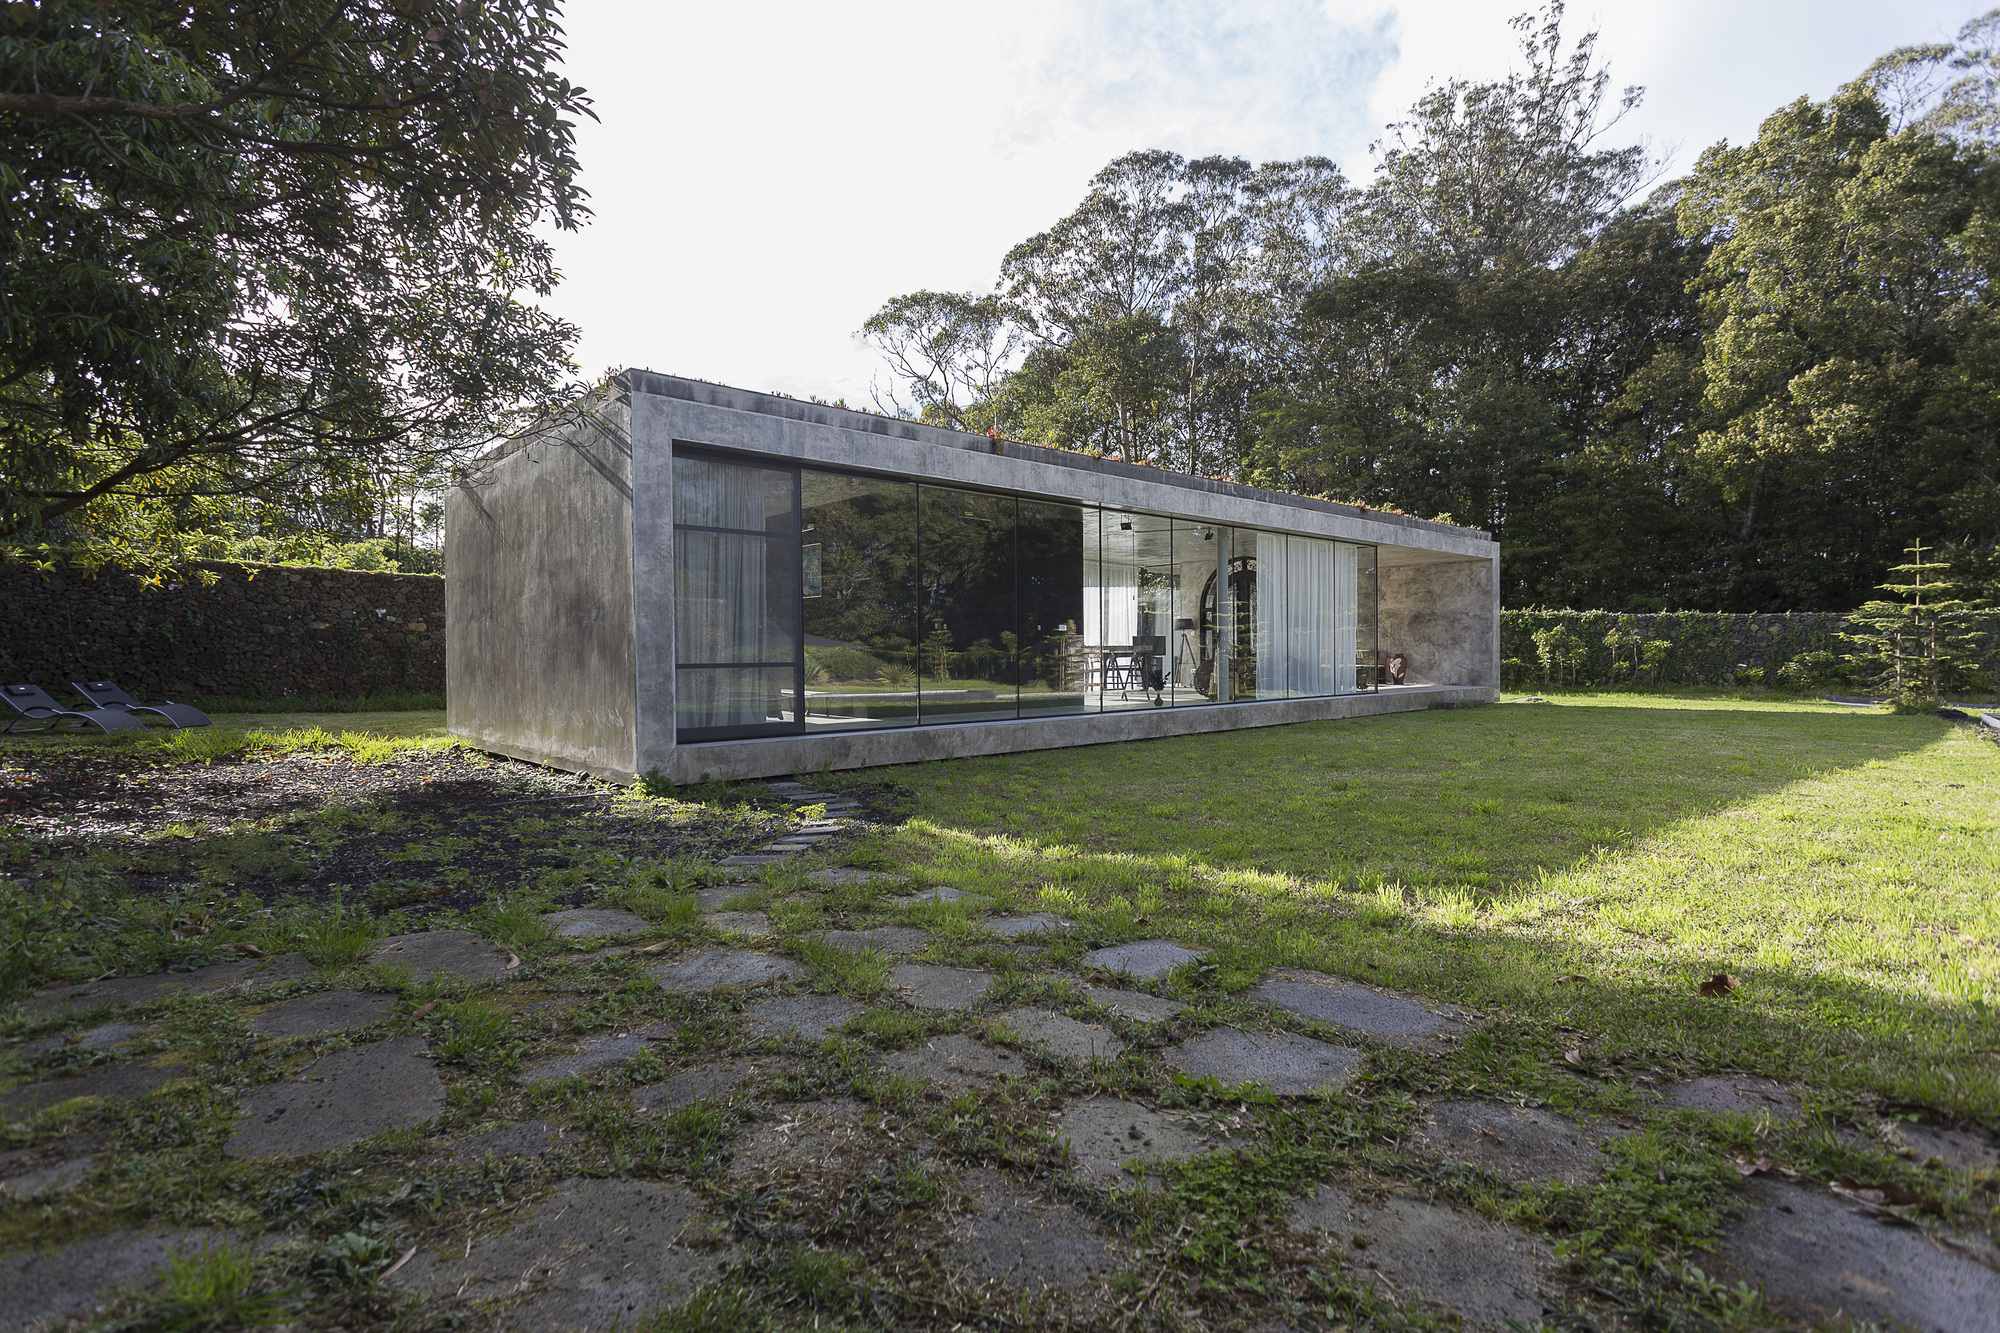 Rosa muerta arco mais archdaily for Houses for small blocks